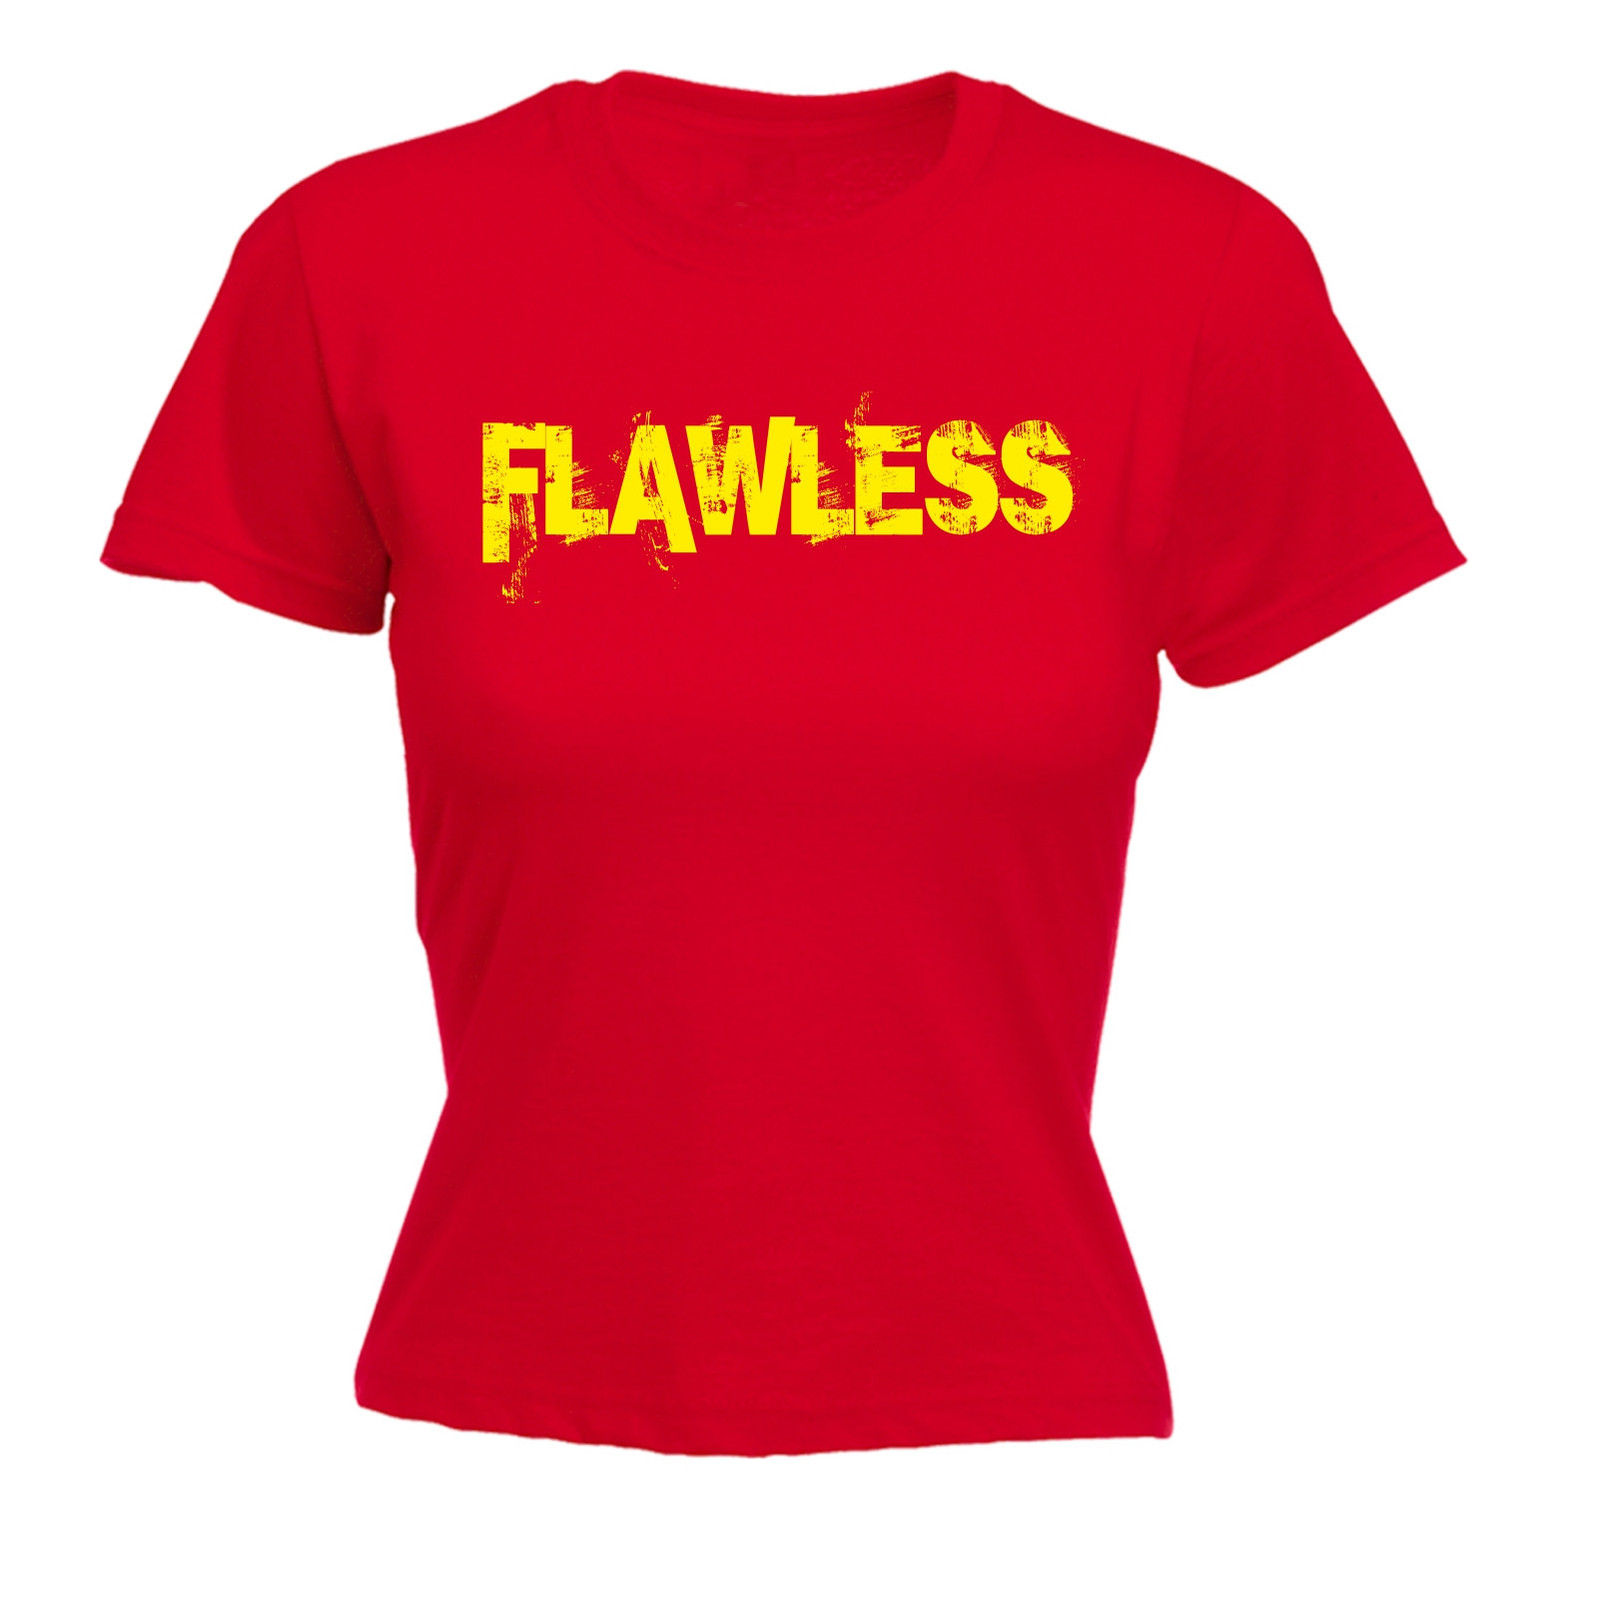 Flawless WOMENS T SHIRT Perfection Hipster Urban Street Funny Gift Birthday Shirt Angel Grunge Streetwear In Shirts From Womens Clothing On